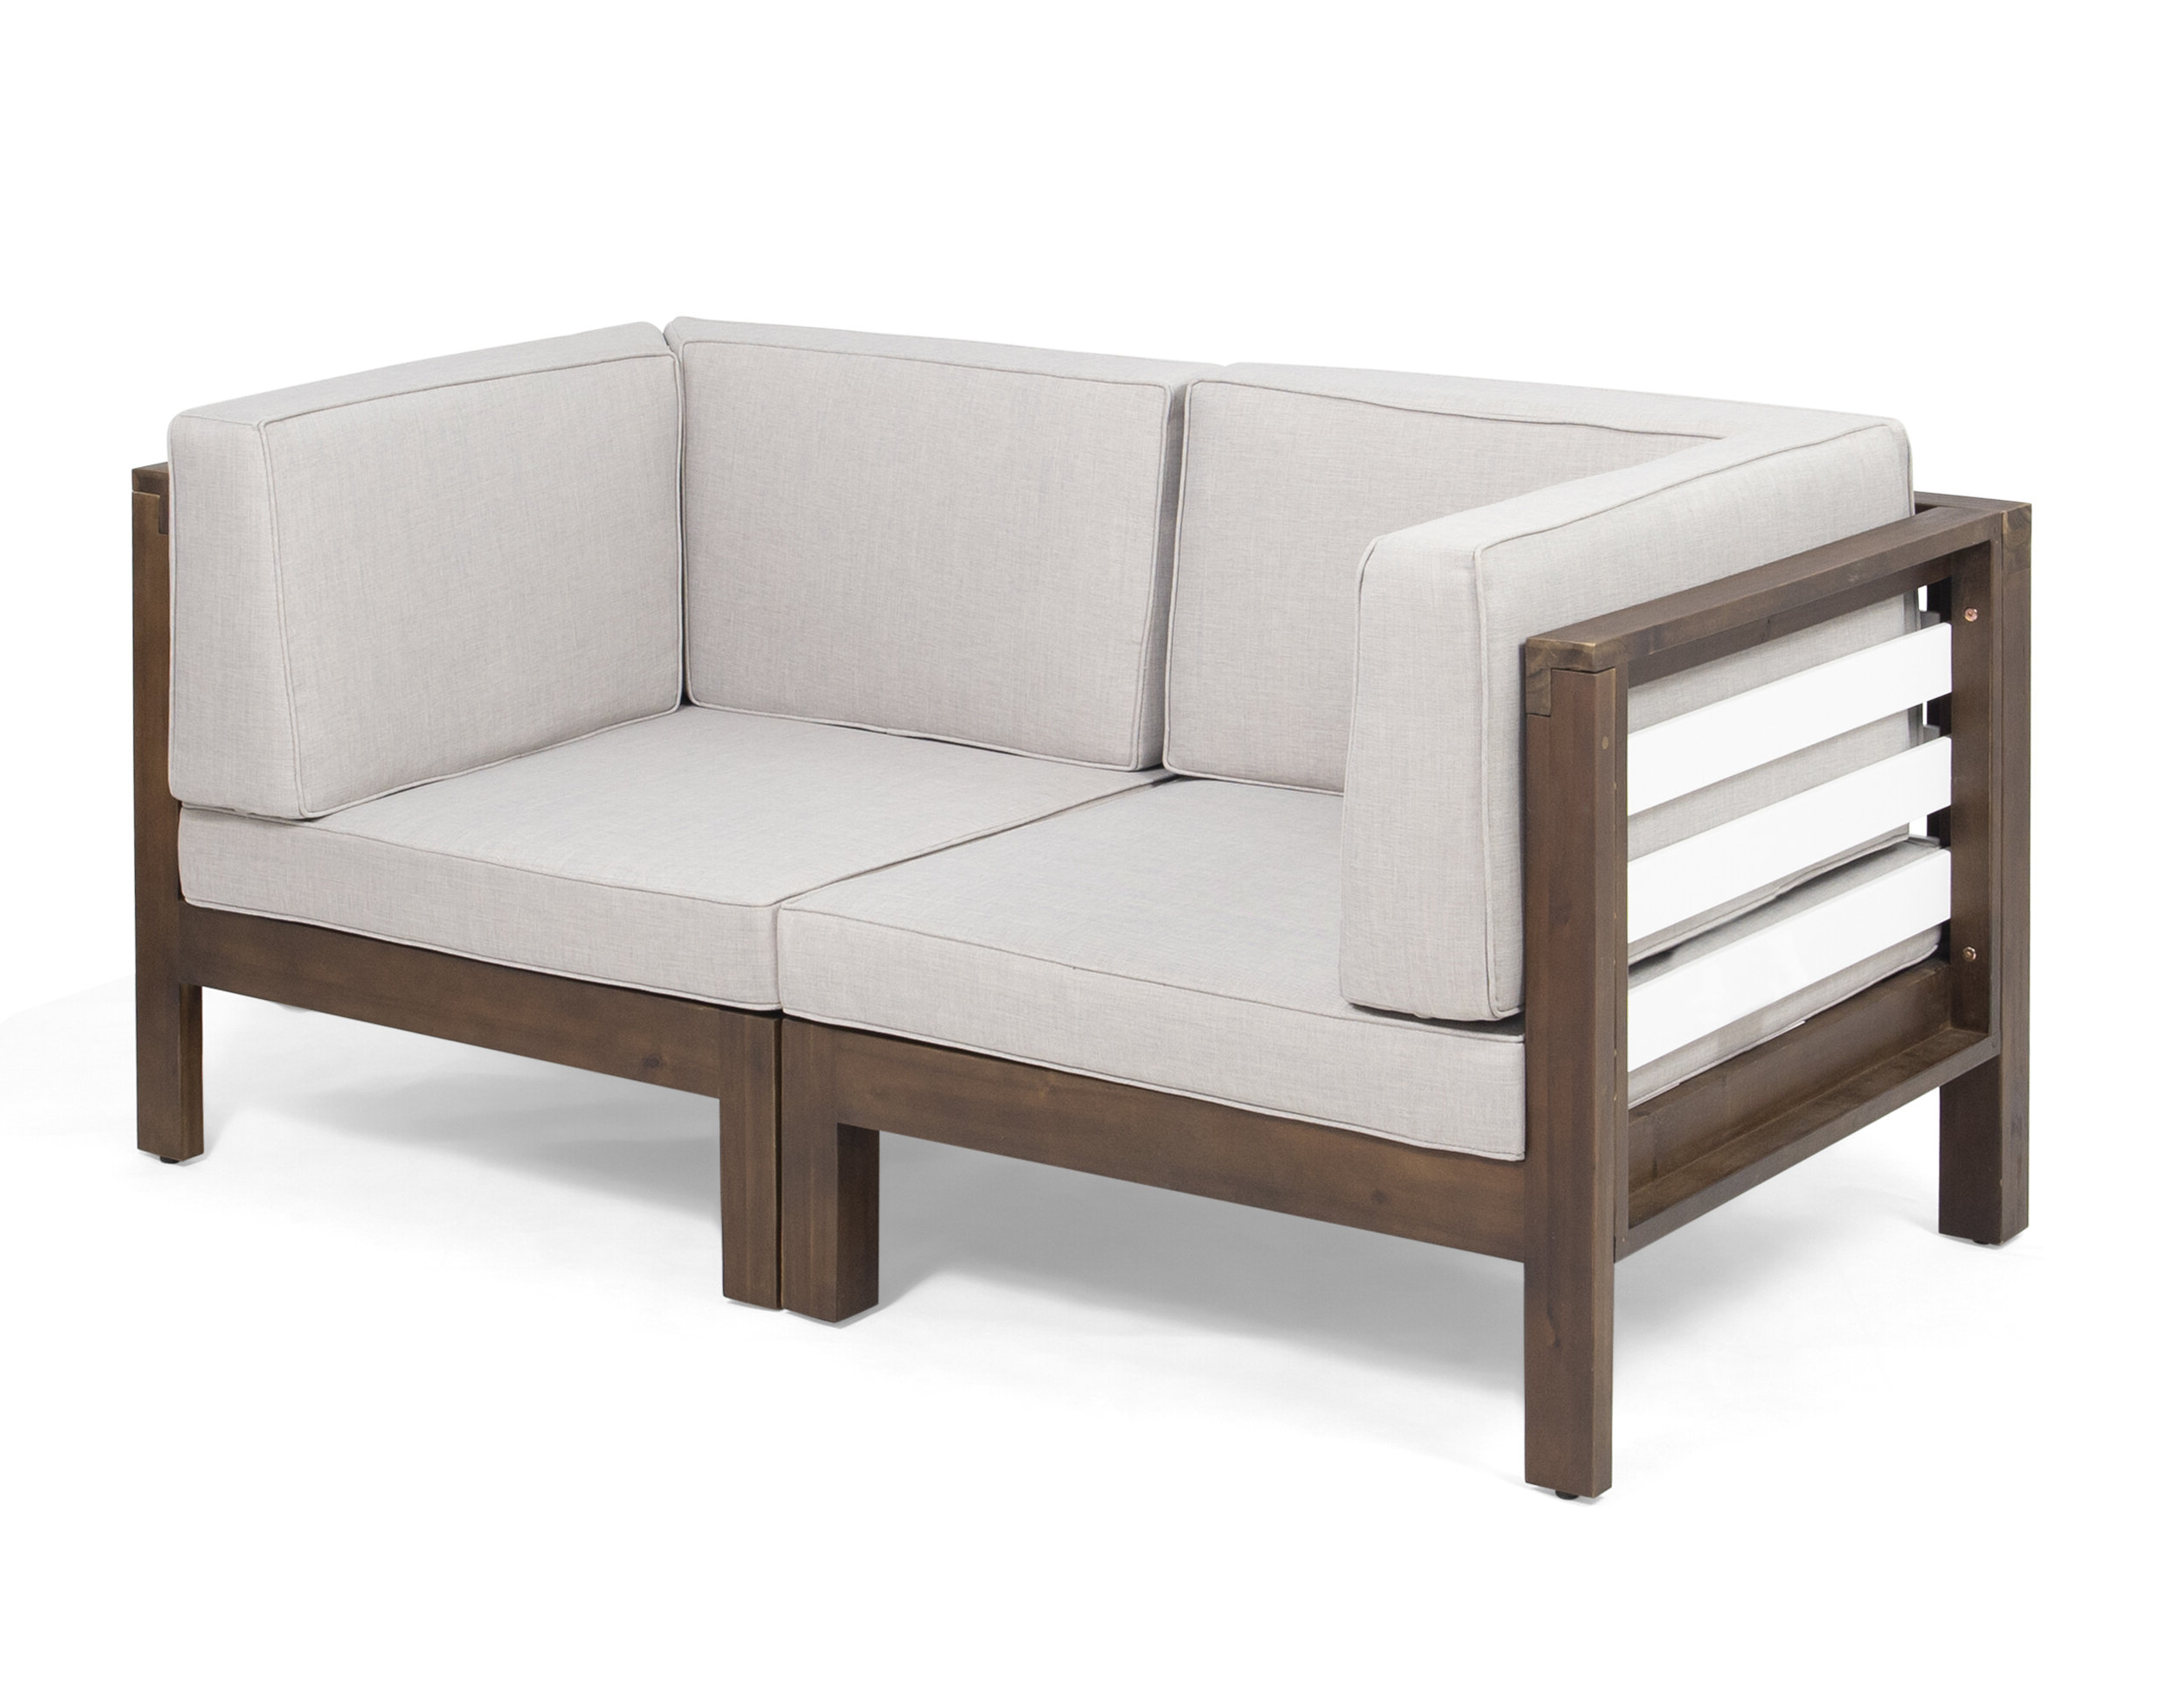 Most Recent Parks Outdoor Modular Loveseat With Cushions With Regard To Lyall Loveseats With Cushion (View 15 of 20)